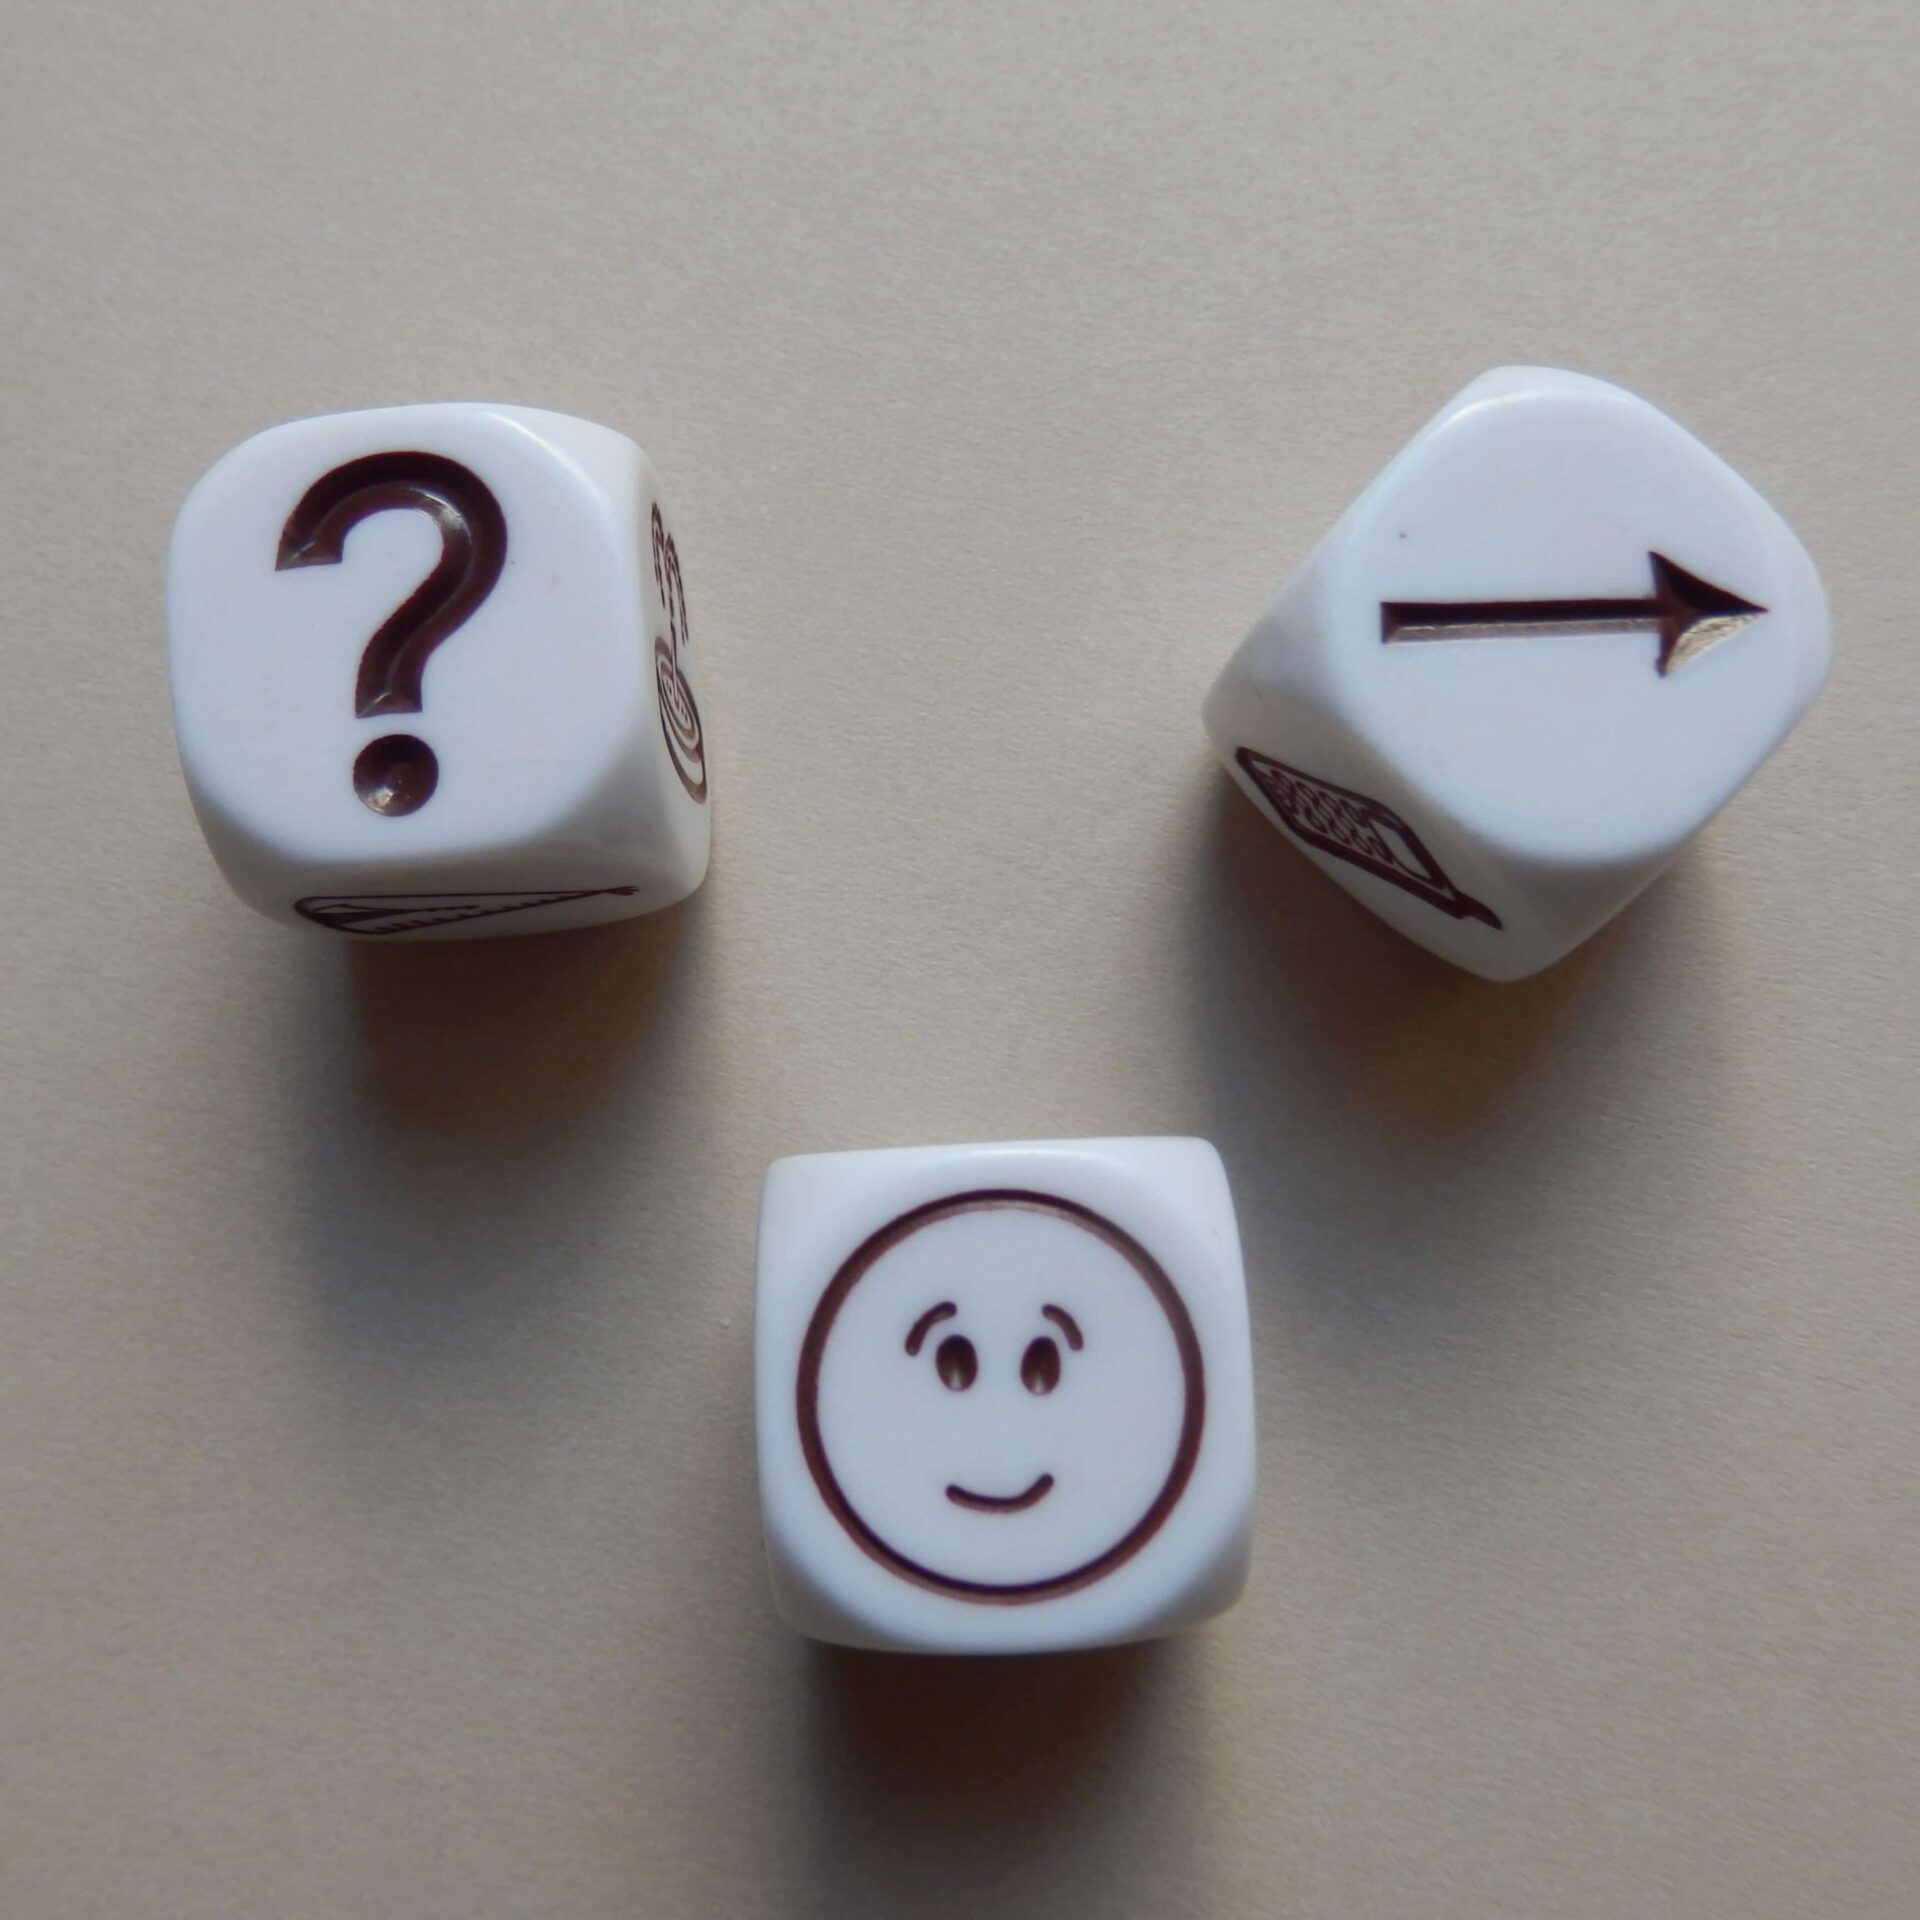 Three white cubes with one black icon each: a question mark, a smiley face and an arrow pointing to the right.